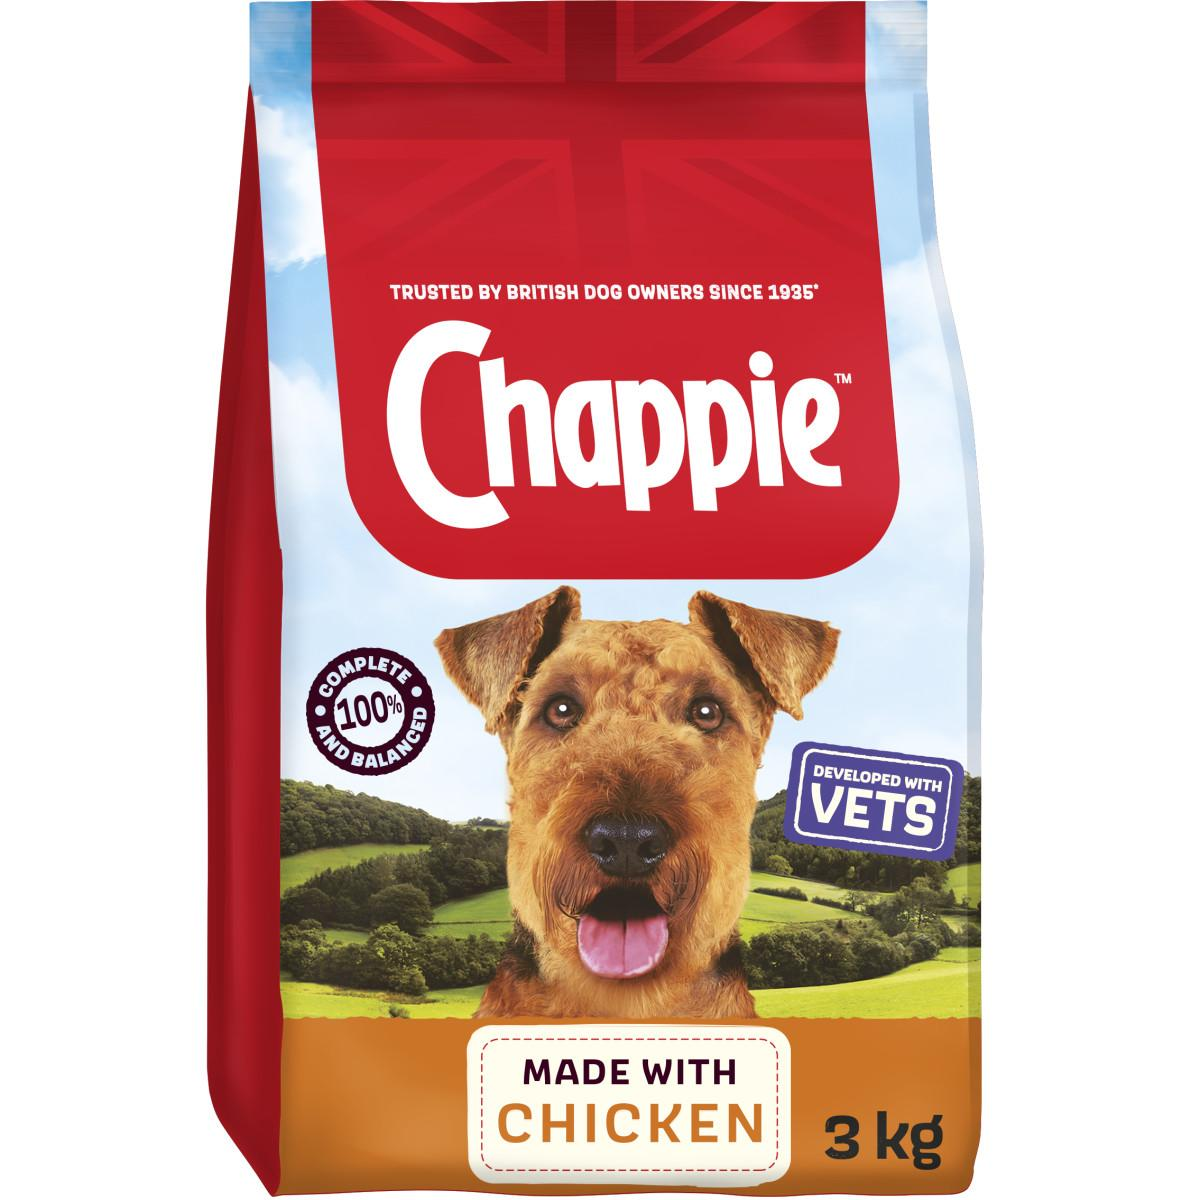 Chappie Chicken & Wholegrain food